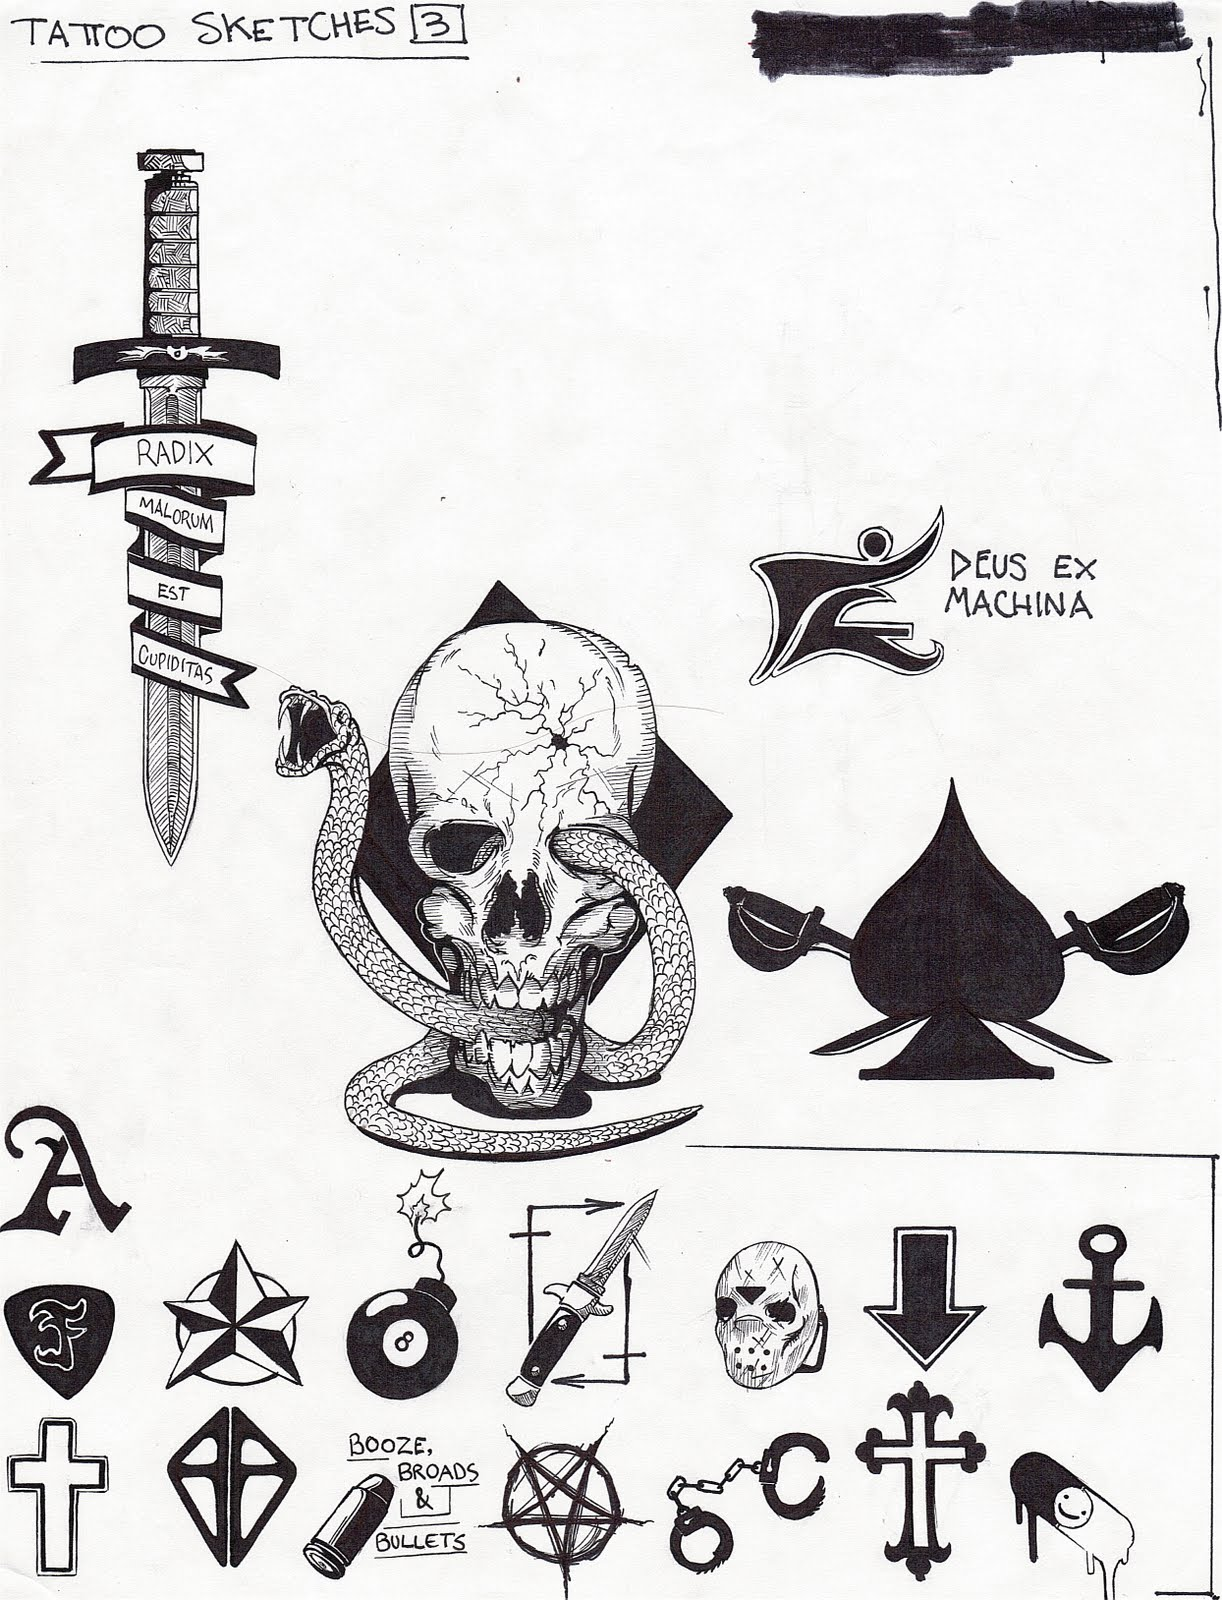 Graveyard Tattoo Drawings Tattoo sketches 3White Power Tattoo Designs